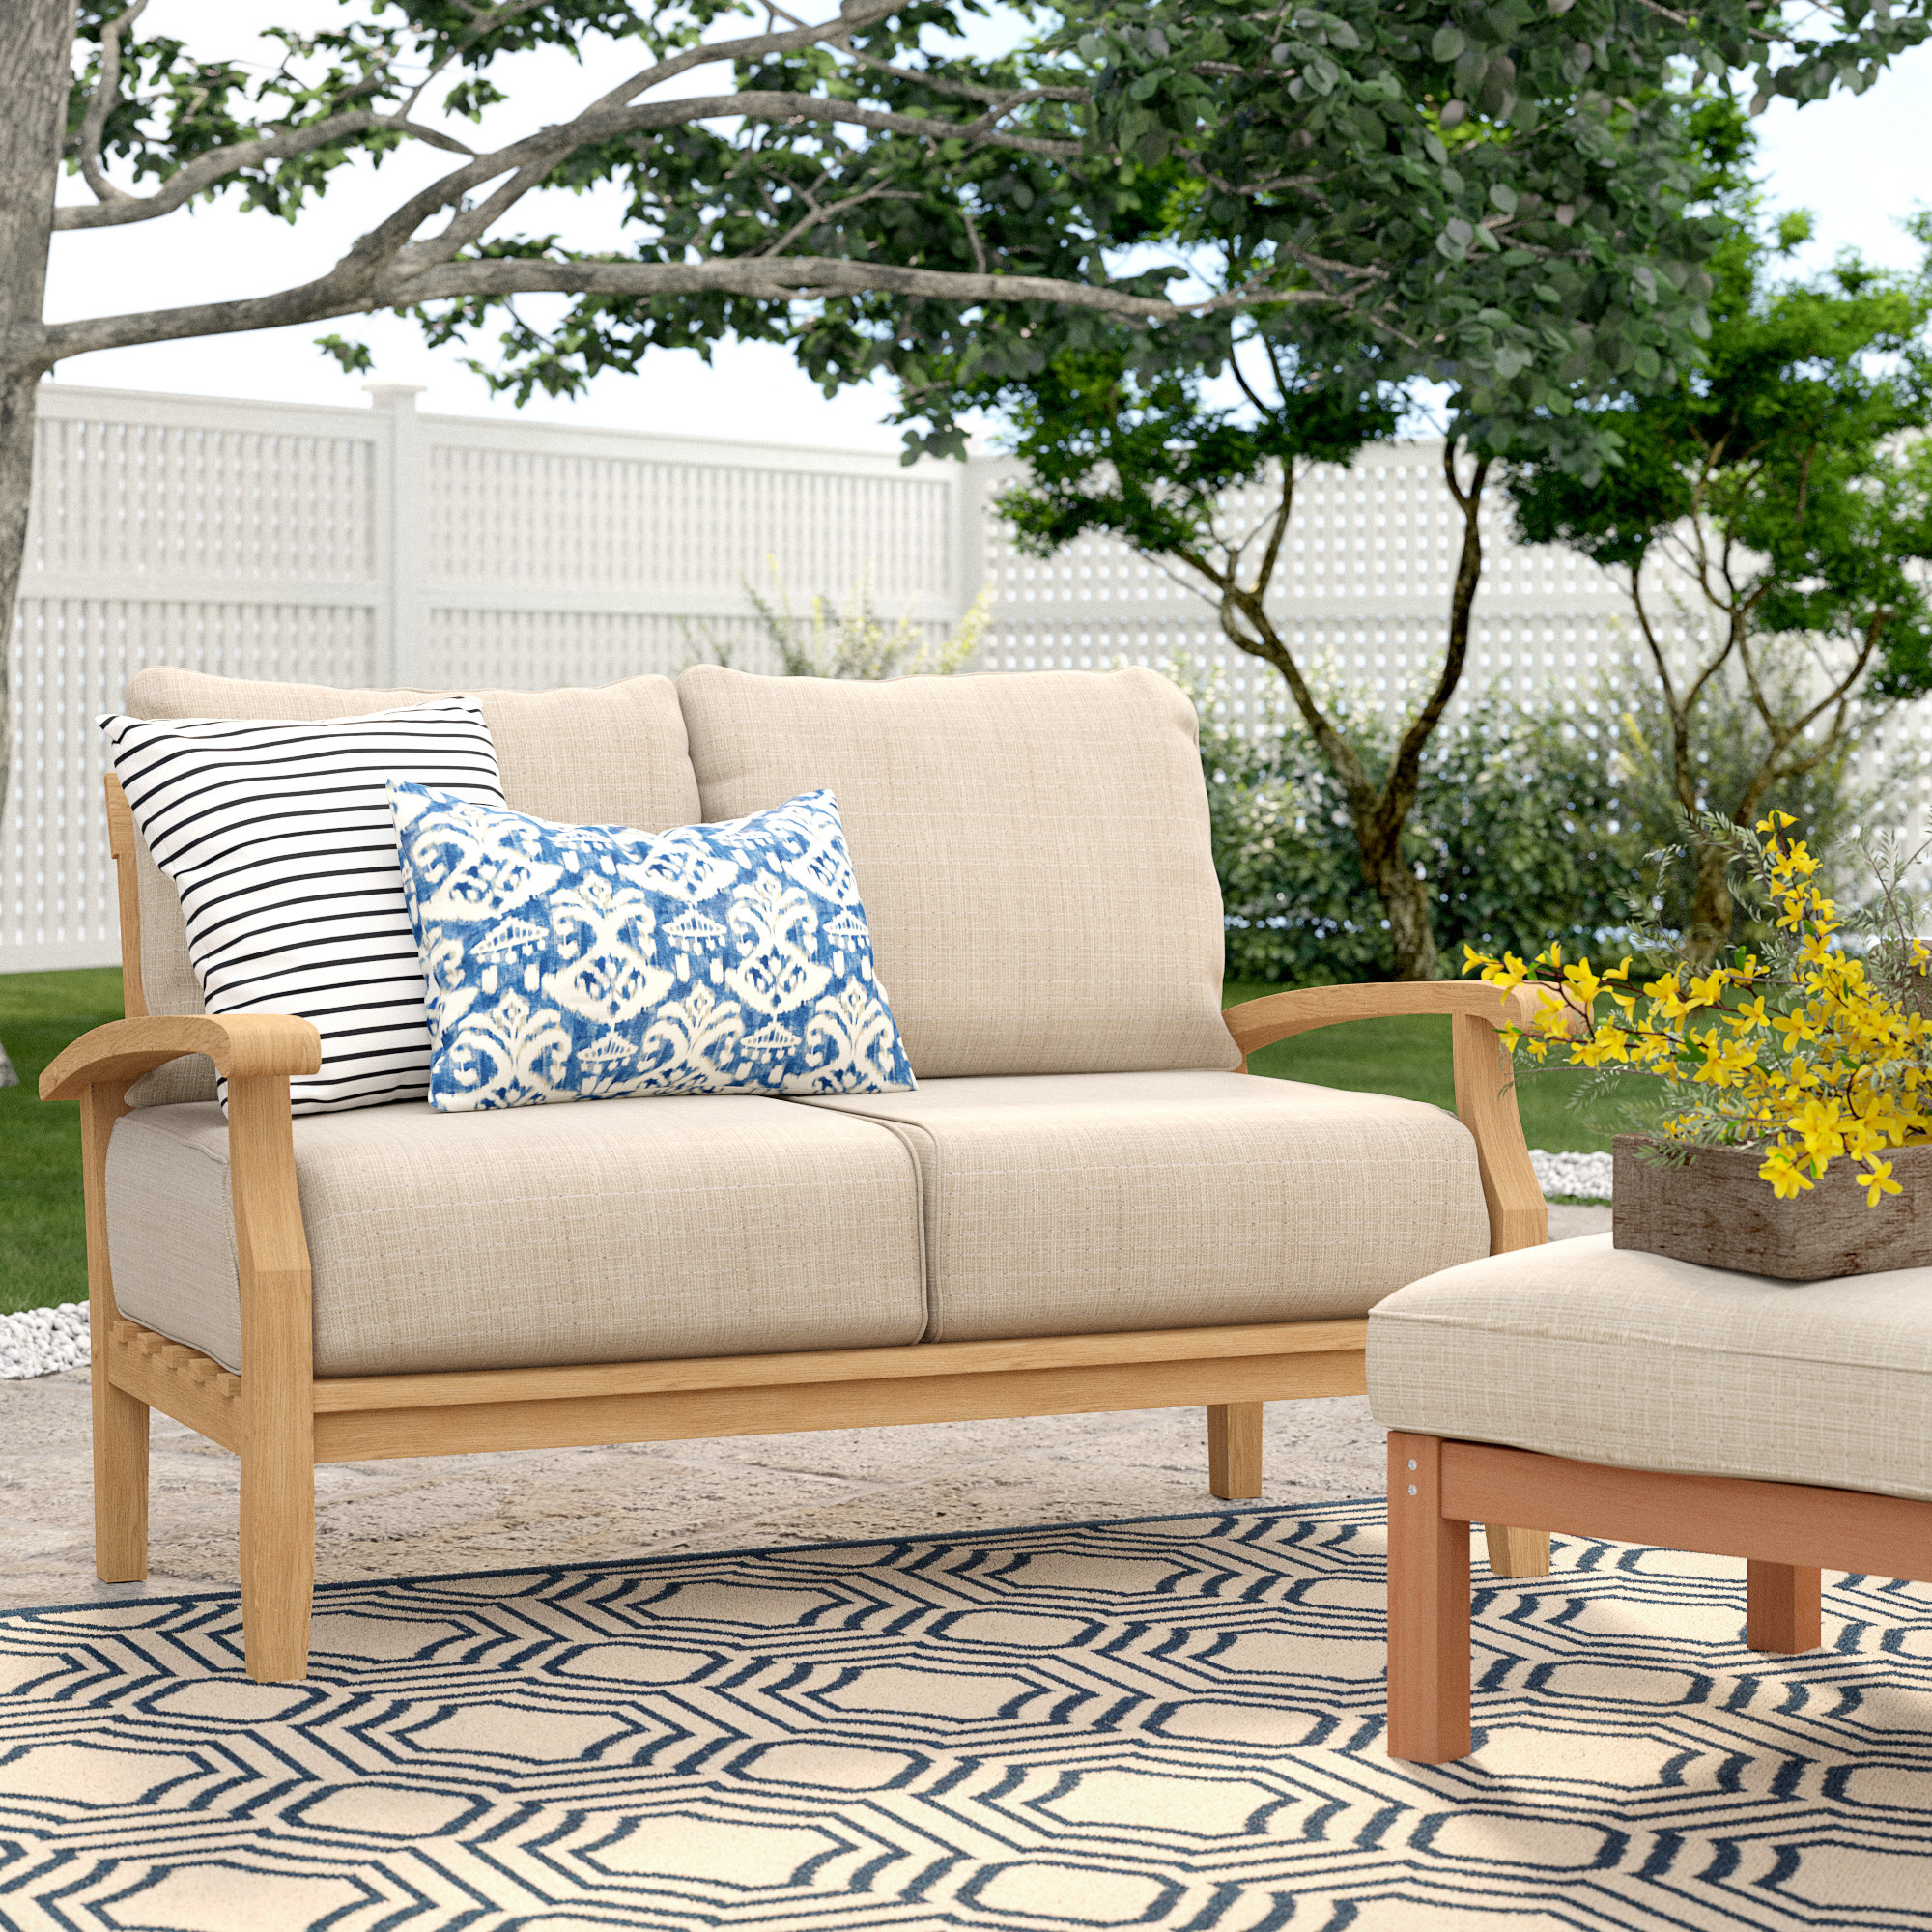 Most Popular Birch Lane™ Heritage Summerton Teak Loveseat With Cushions Throughout Bullock Outdoor Wooden Loveseats With Cushions (View 8 of 20)